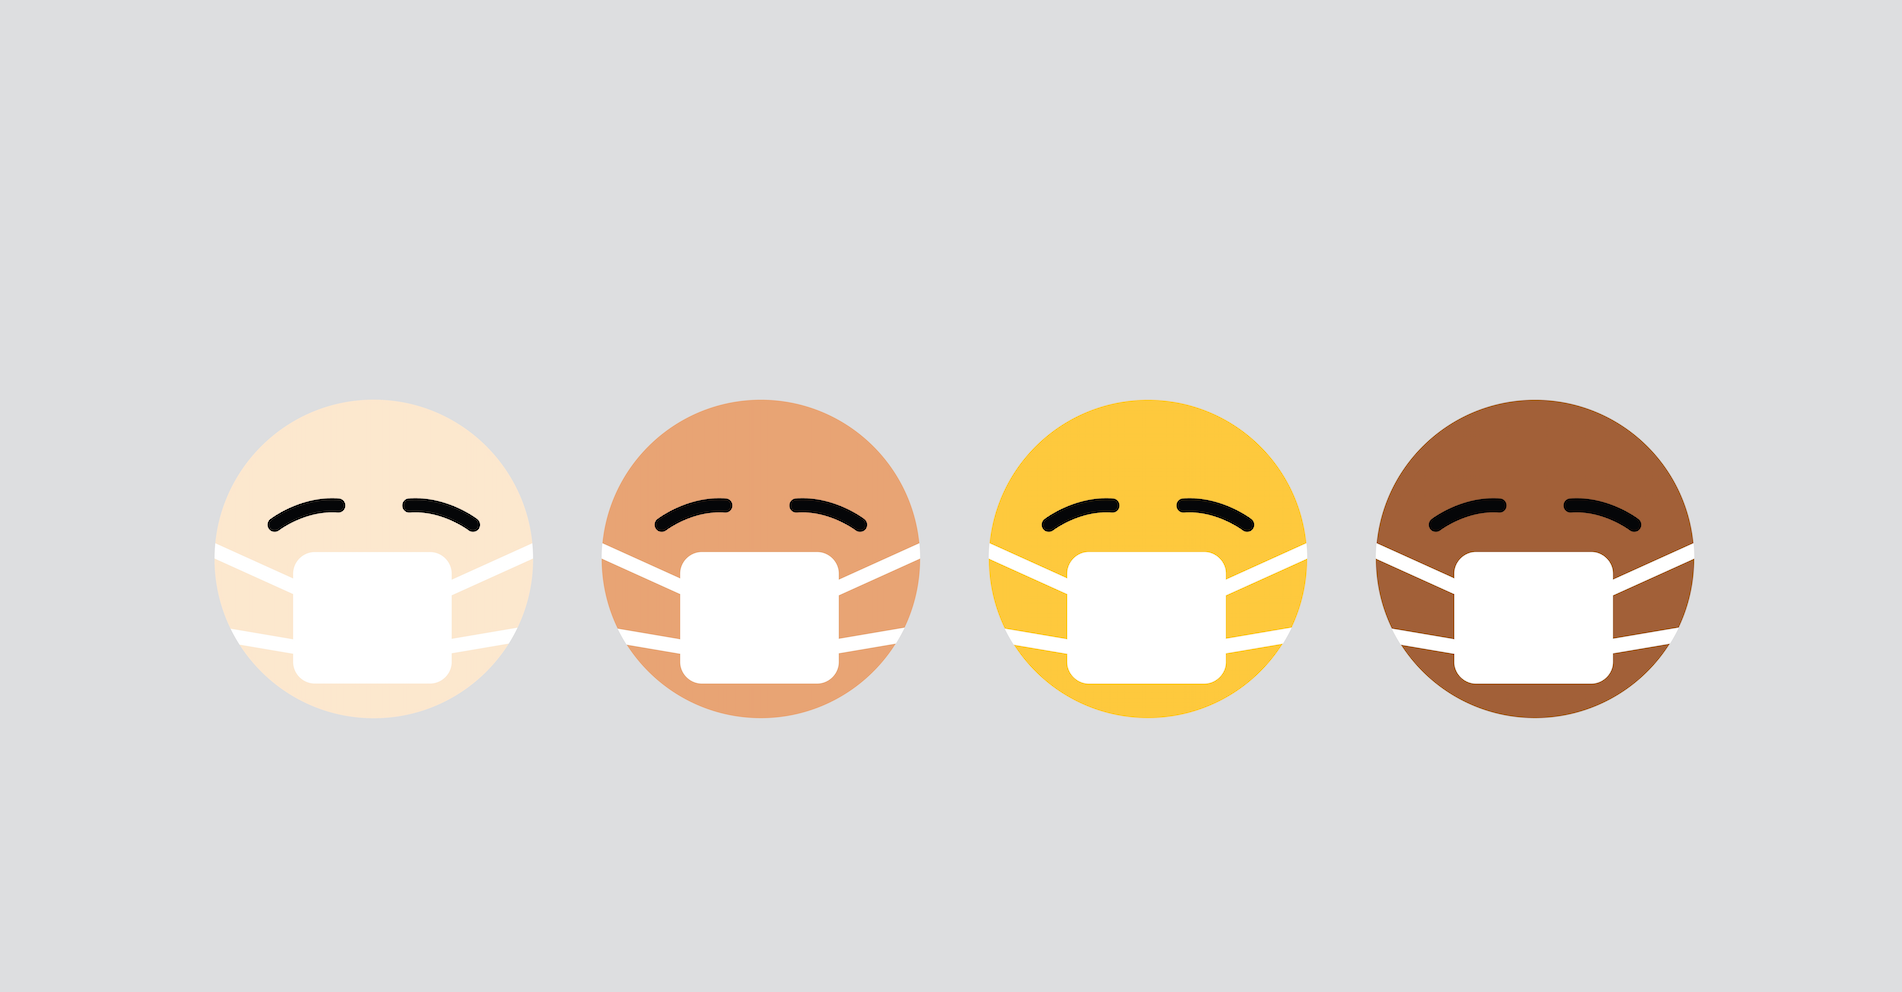 screenshot of emojis with different skin colors wearing masks